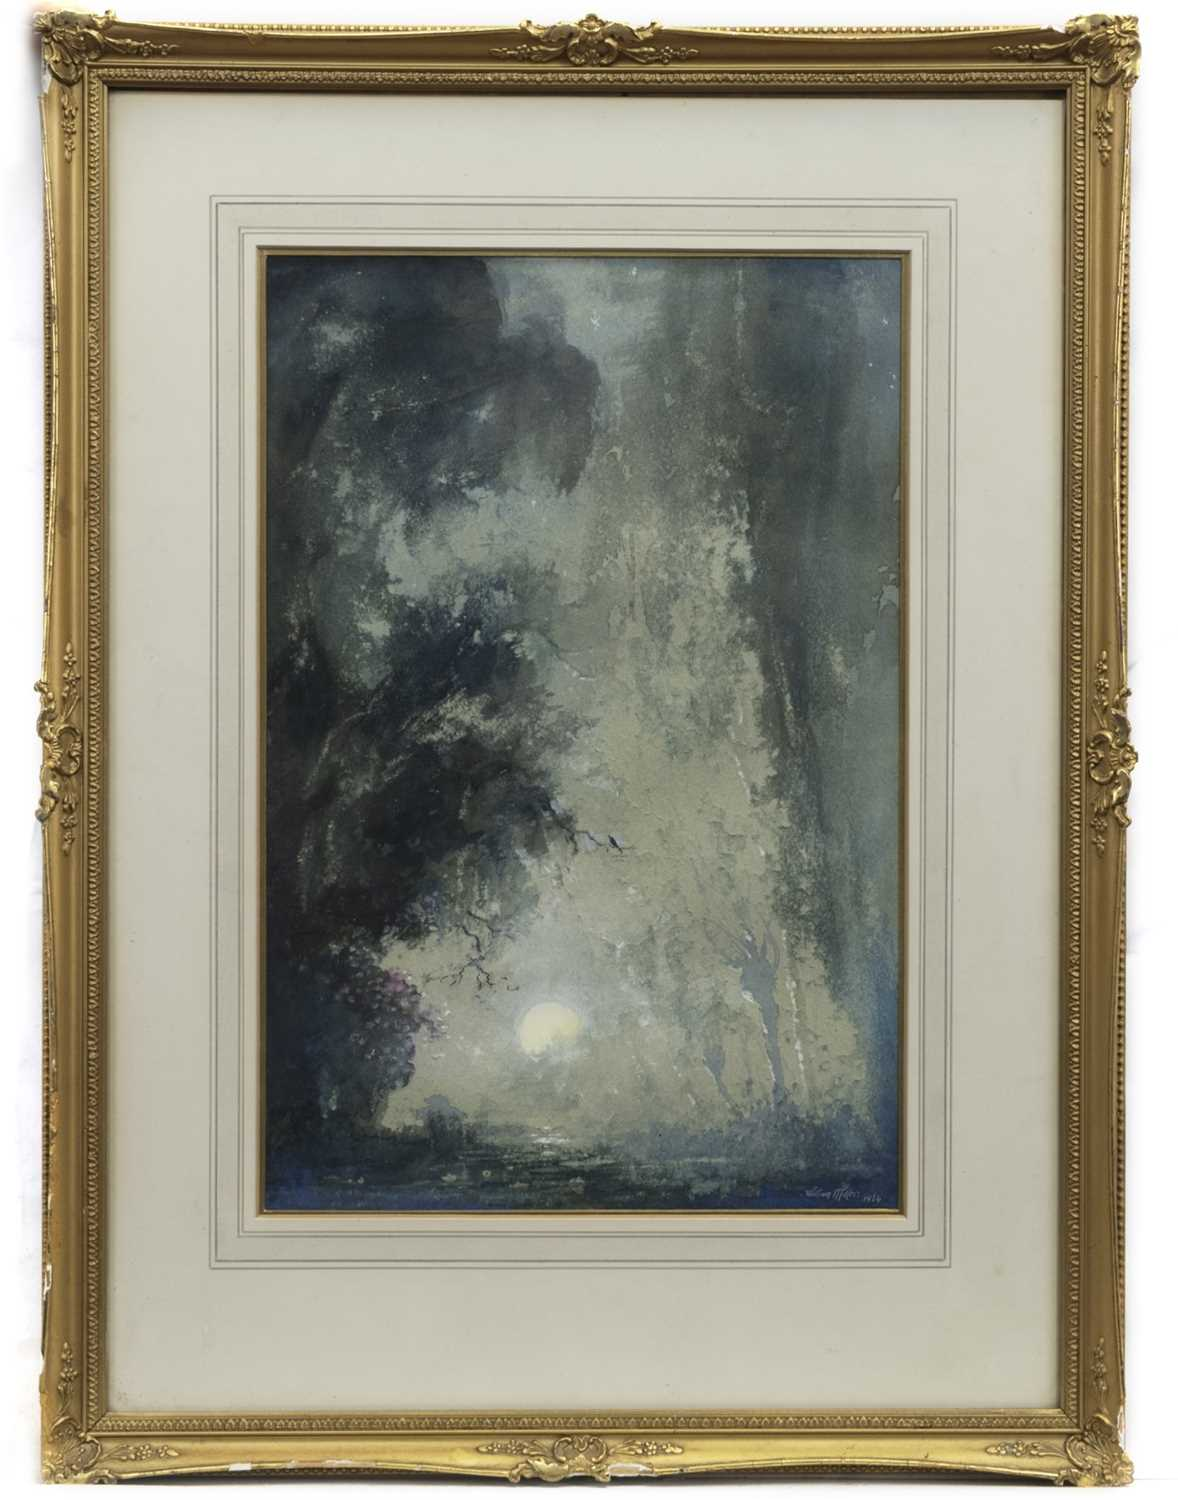 Lot 43 - THE ENCHANTED GLADE, A WATERCOLOUR BY WILLIAM MILLER